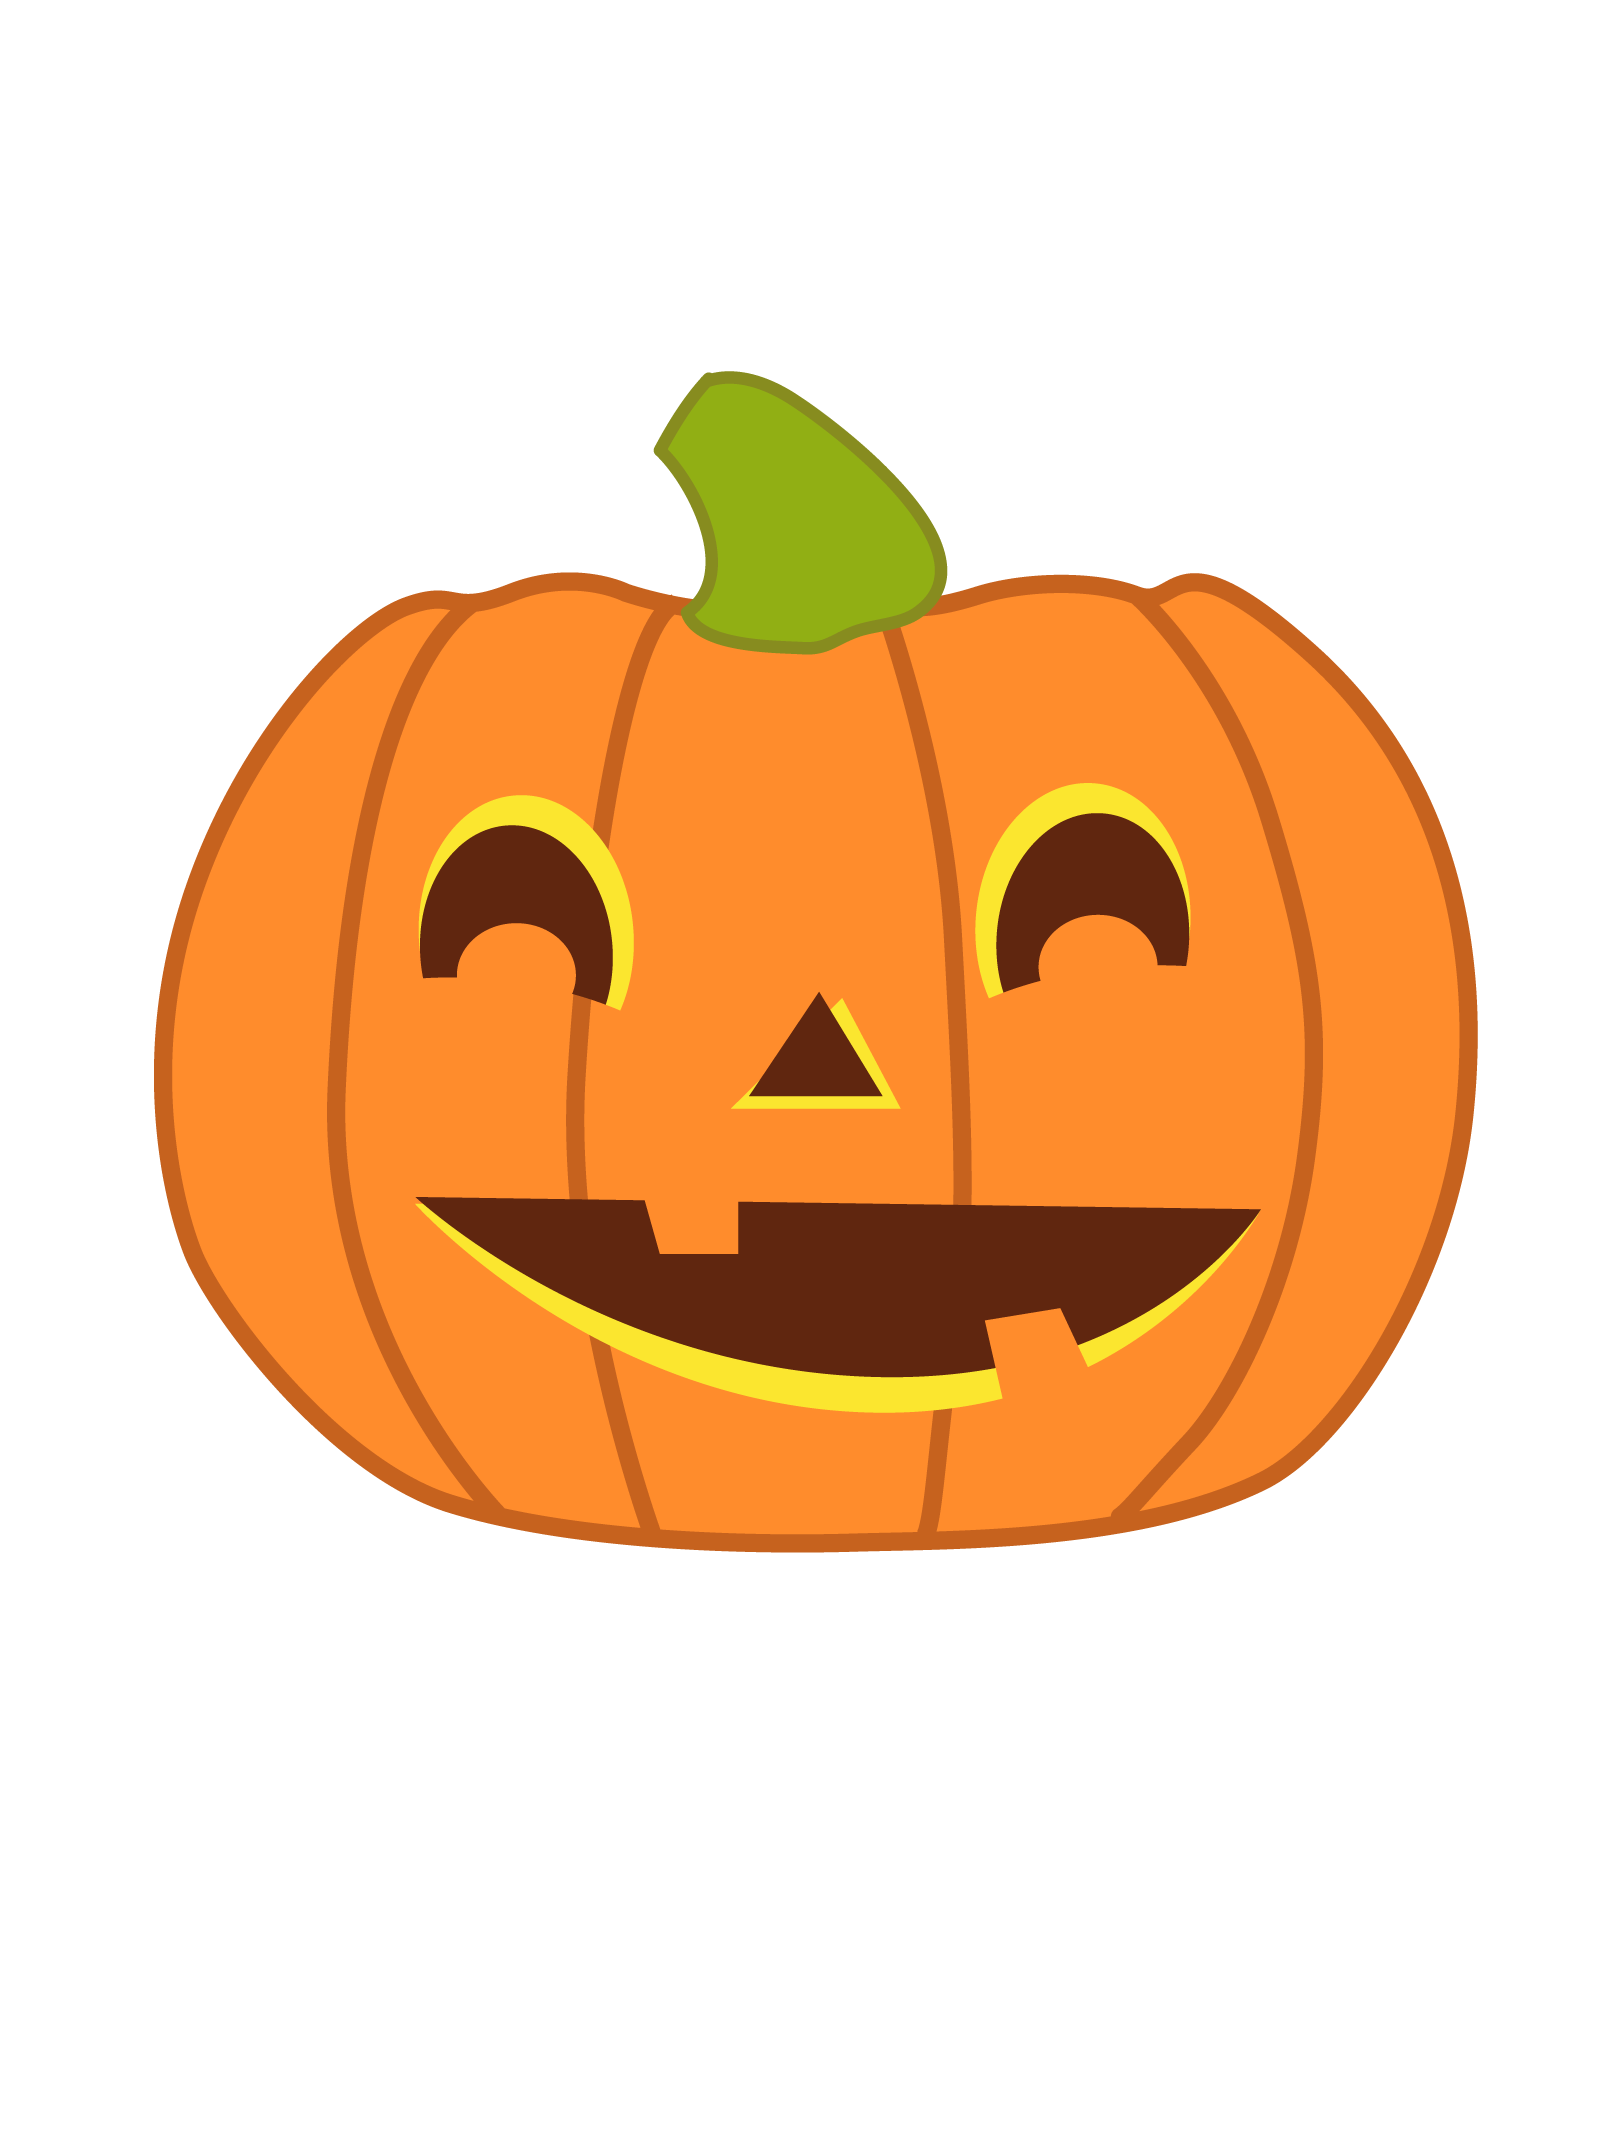 Pumkin vector cute. Chevron pumpkin royalty